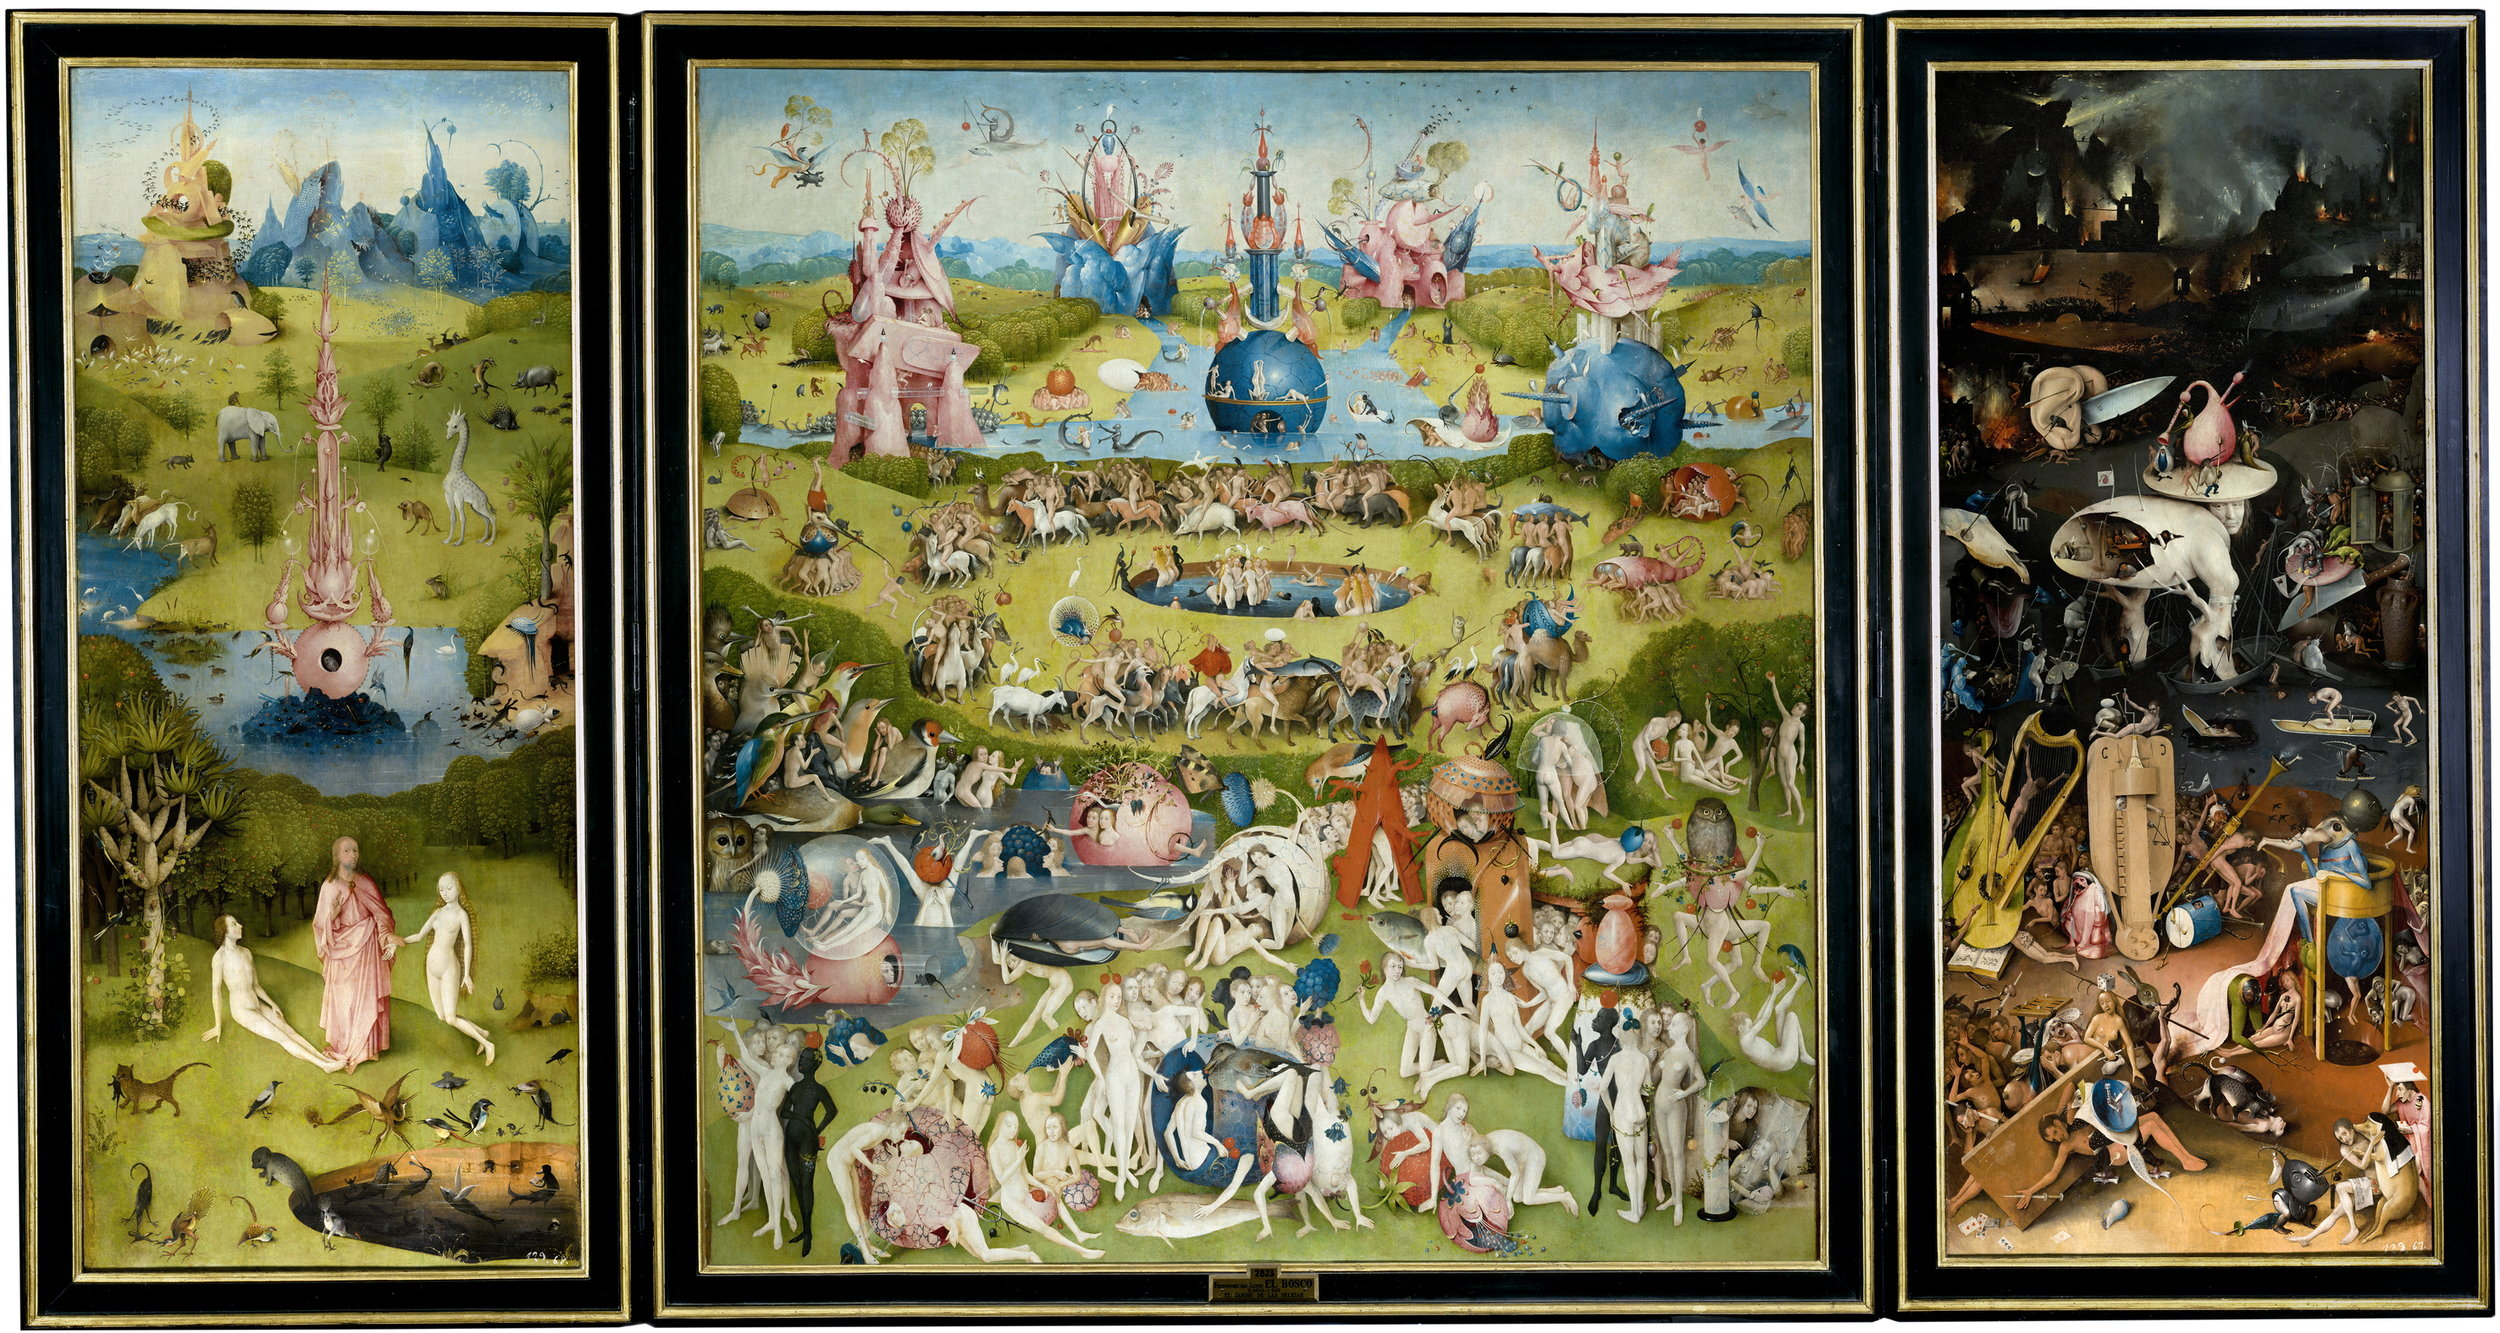 Bish, bash ... Bosch's The Garden of Earthly Delights